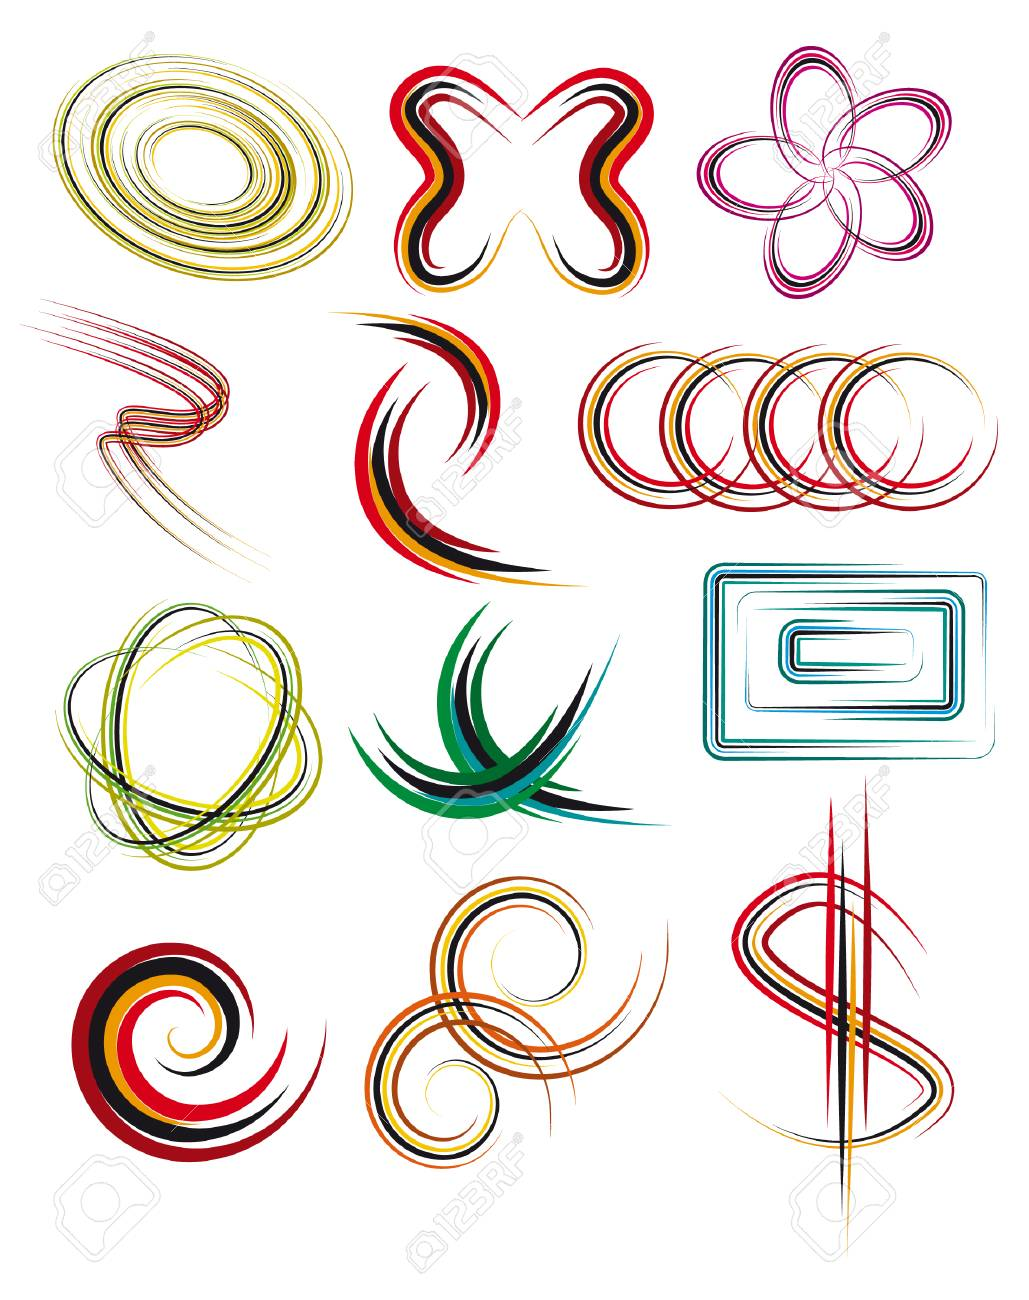 A set of abstract design elements. Vector illustration Stock Vector - 6062841